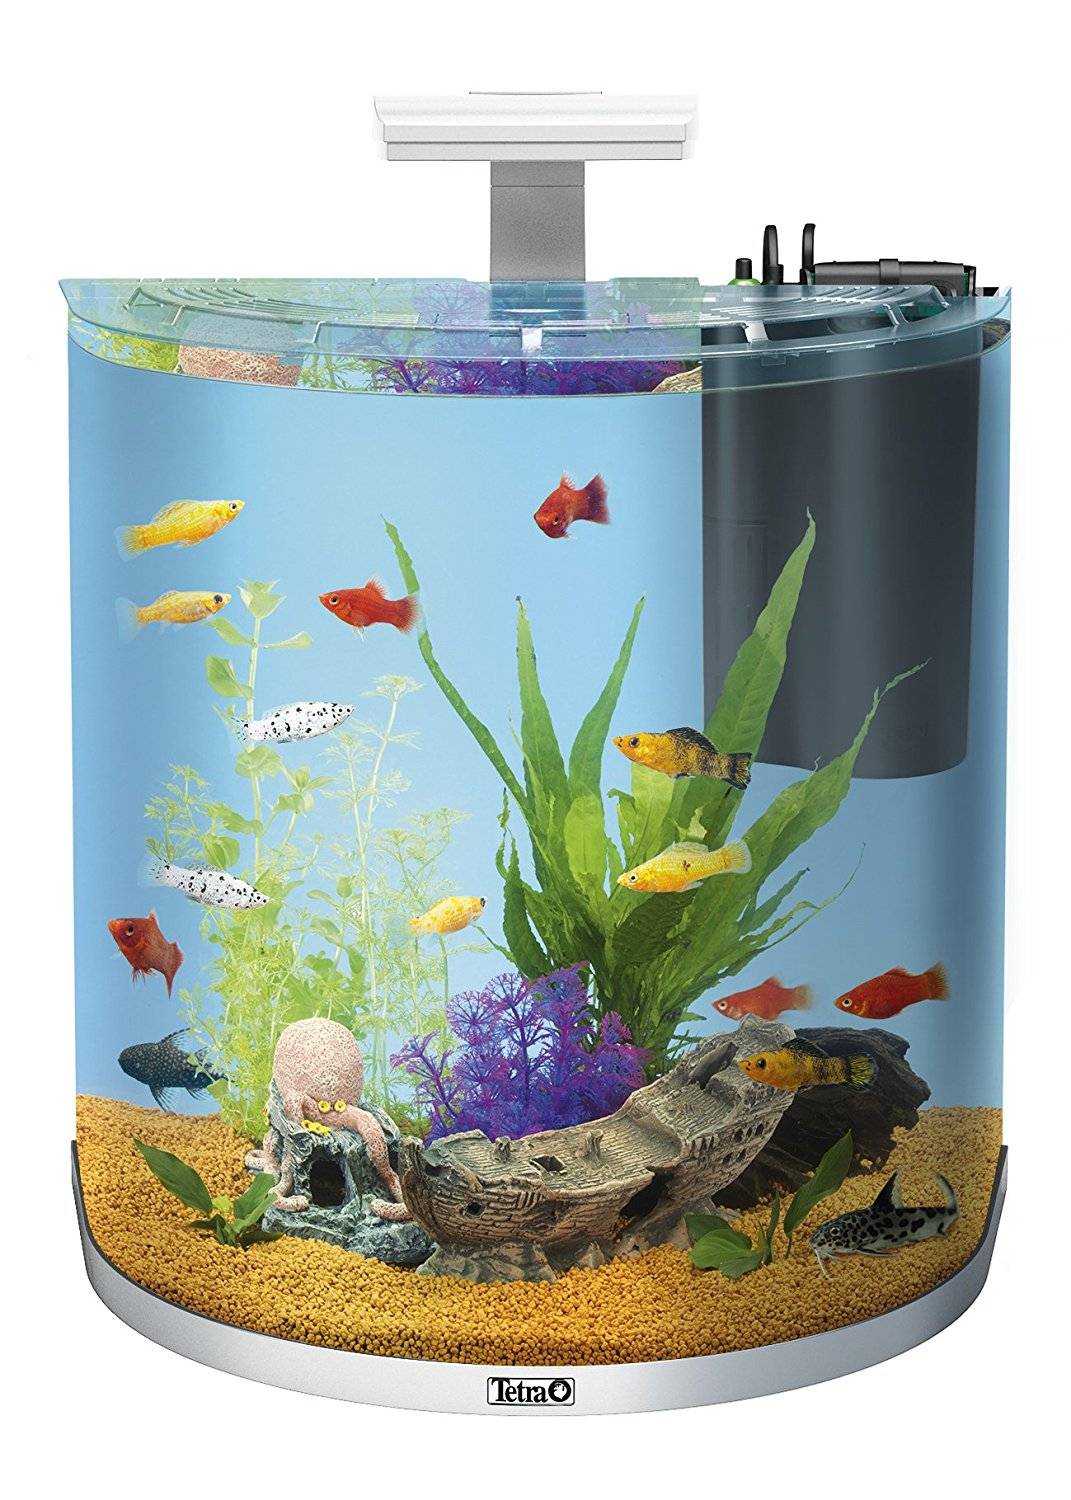 amazon angebot des tages artikel f rs aquarium bis zu. Black Bedroom Furniture Sets. Home Design Ideas